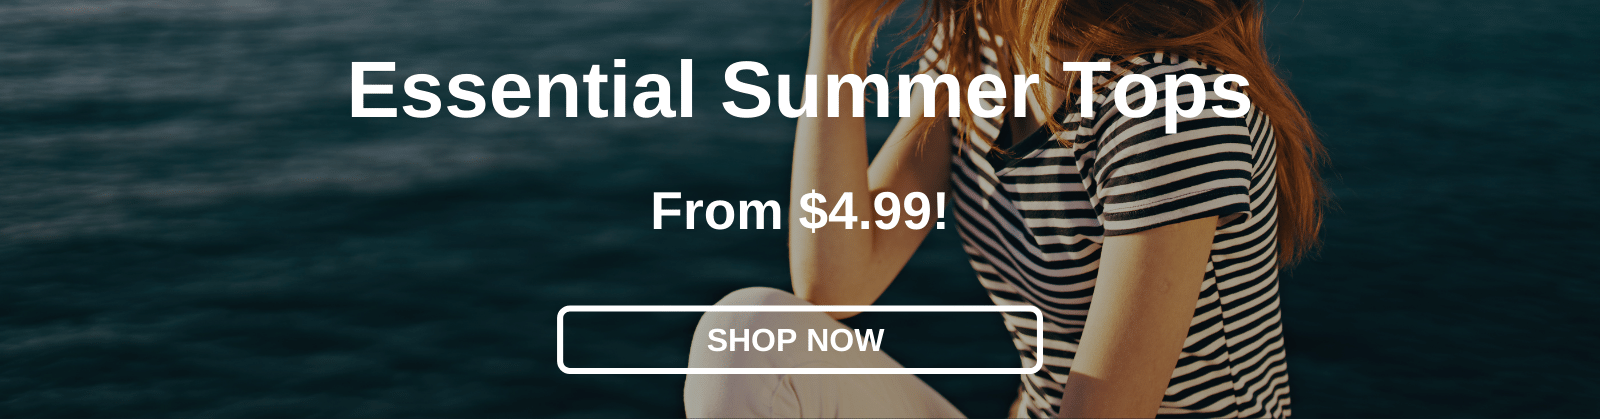 Essential Summer Tops From $4.99! [Shop Now]